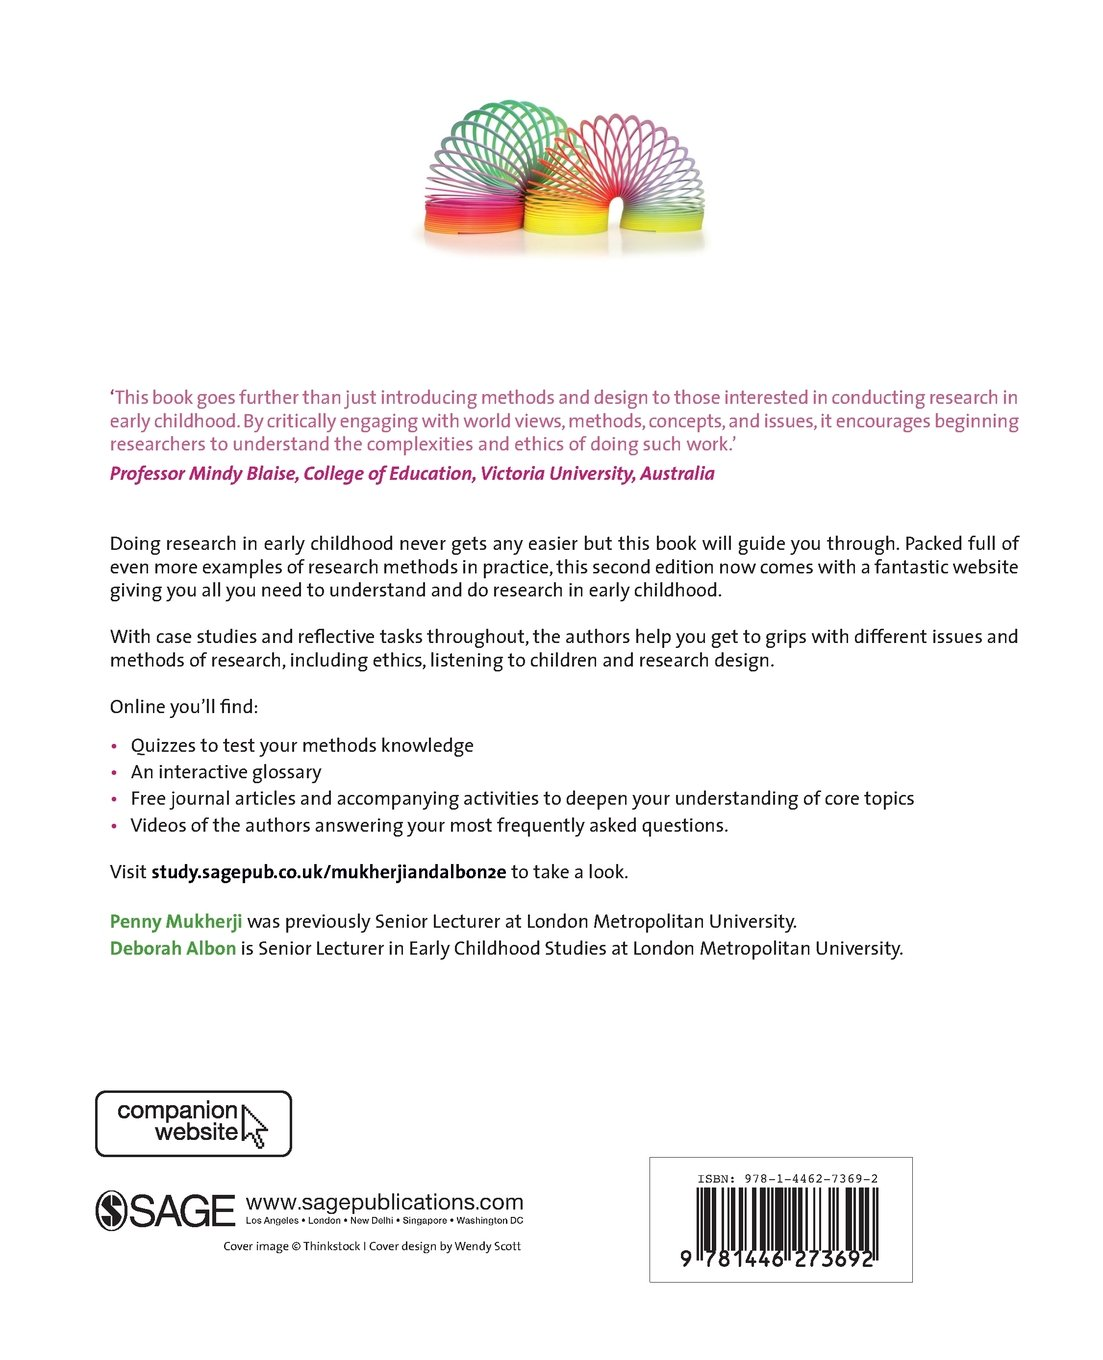 Research Methods In Early Childhood Amazoncouk Penny Mukherji